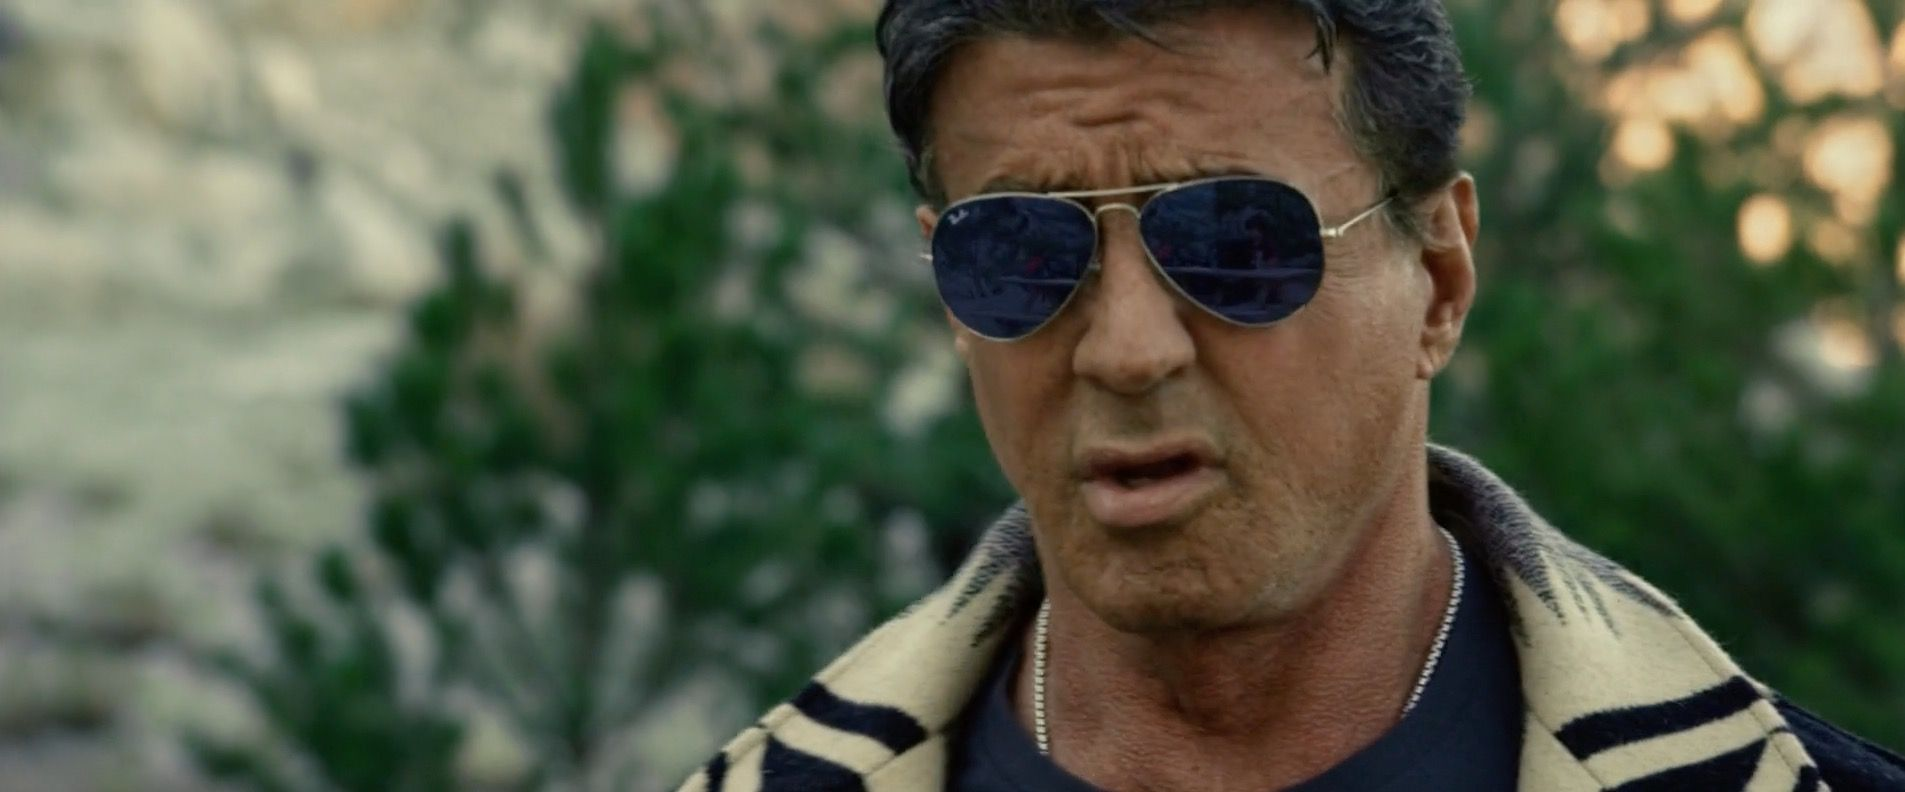 62f05d93aa5 Ray Ban sunglasses worn by Sylvester Stallone in THE EXPENDABLES (2014)   raybanofficial